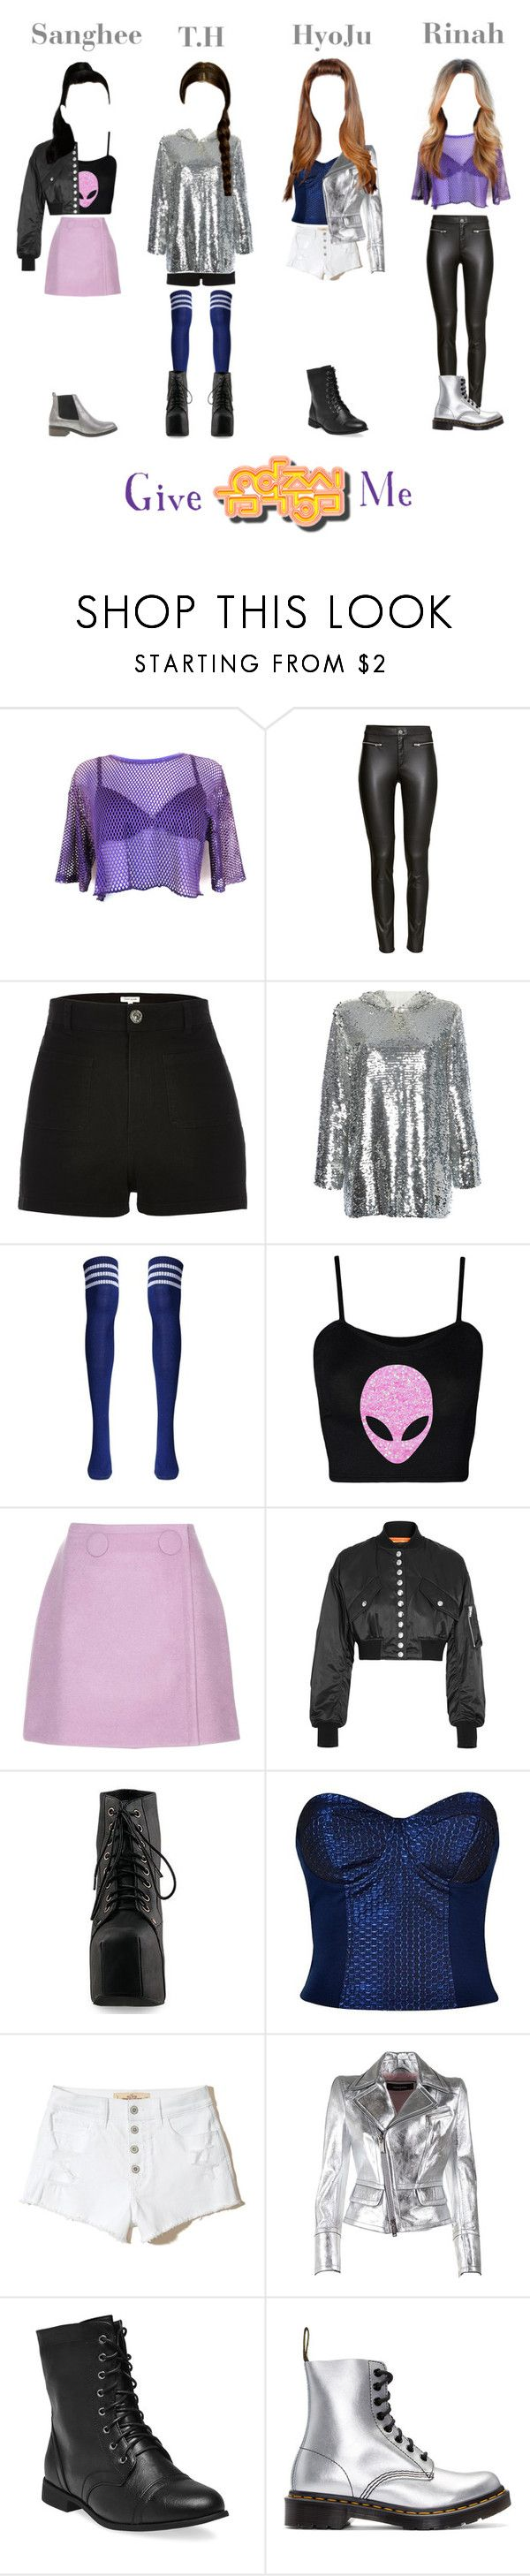 """""""[HOT] T.O.P - Give Me Show Music Core"""" by topofficial ❤ liked on Polyvore featuring H&M, River Island, MSGM, STELLA McCARTNEY, Alexander Wang, Jeffrey Campbell, Hollister Co., Dsquared2, Wet Seal and Dr. Martens"""